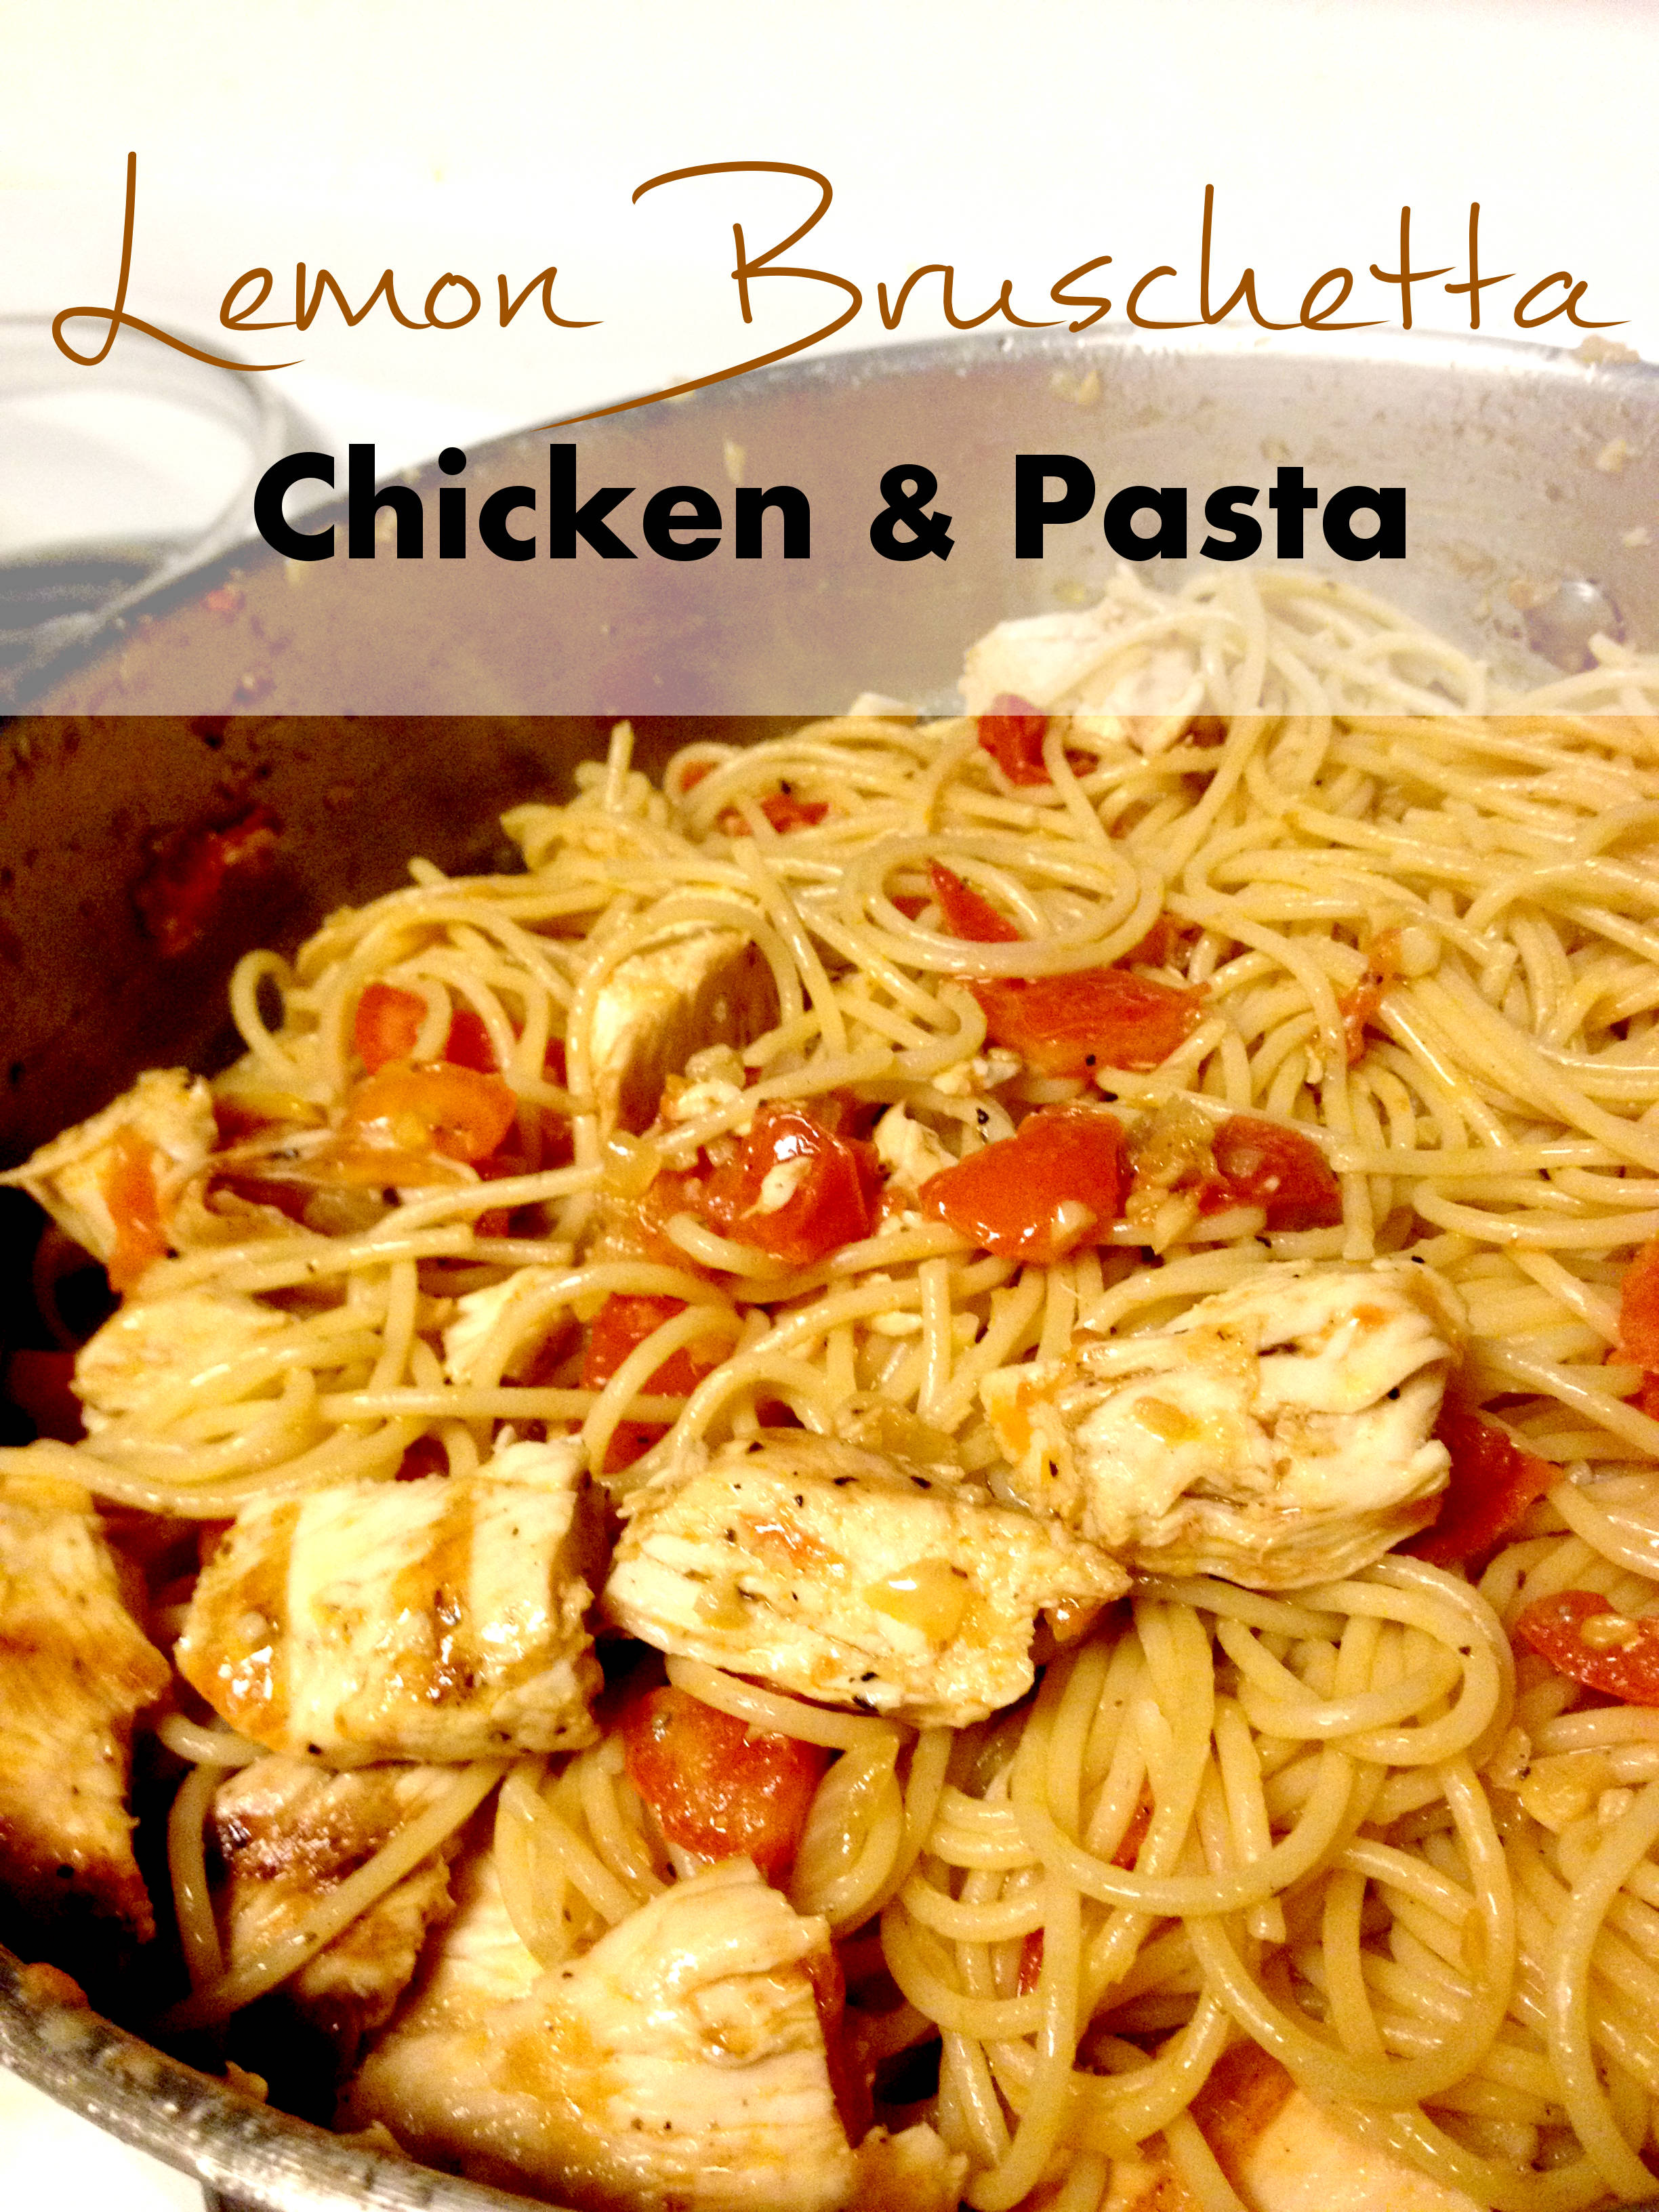 Lemon Bruschetta Chicken & Pasta